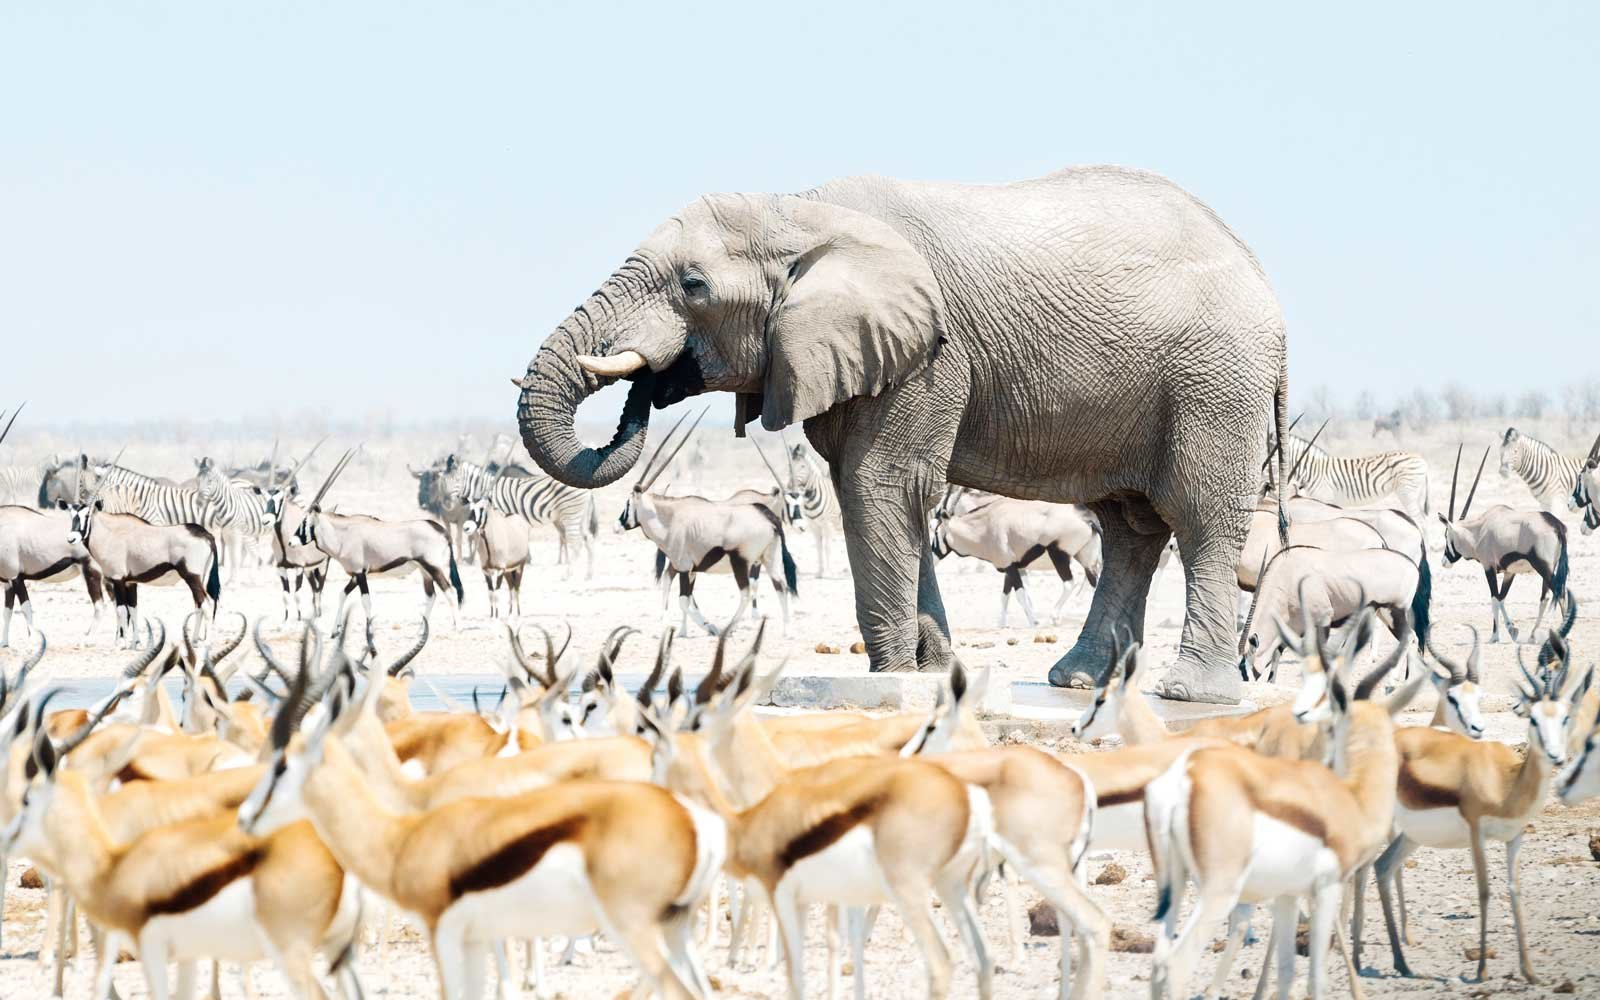 Get up close and personal with elephants and lions in Namibia